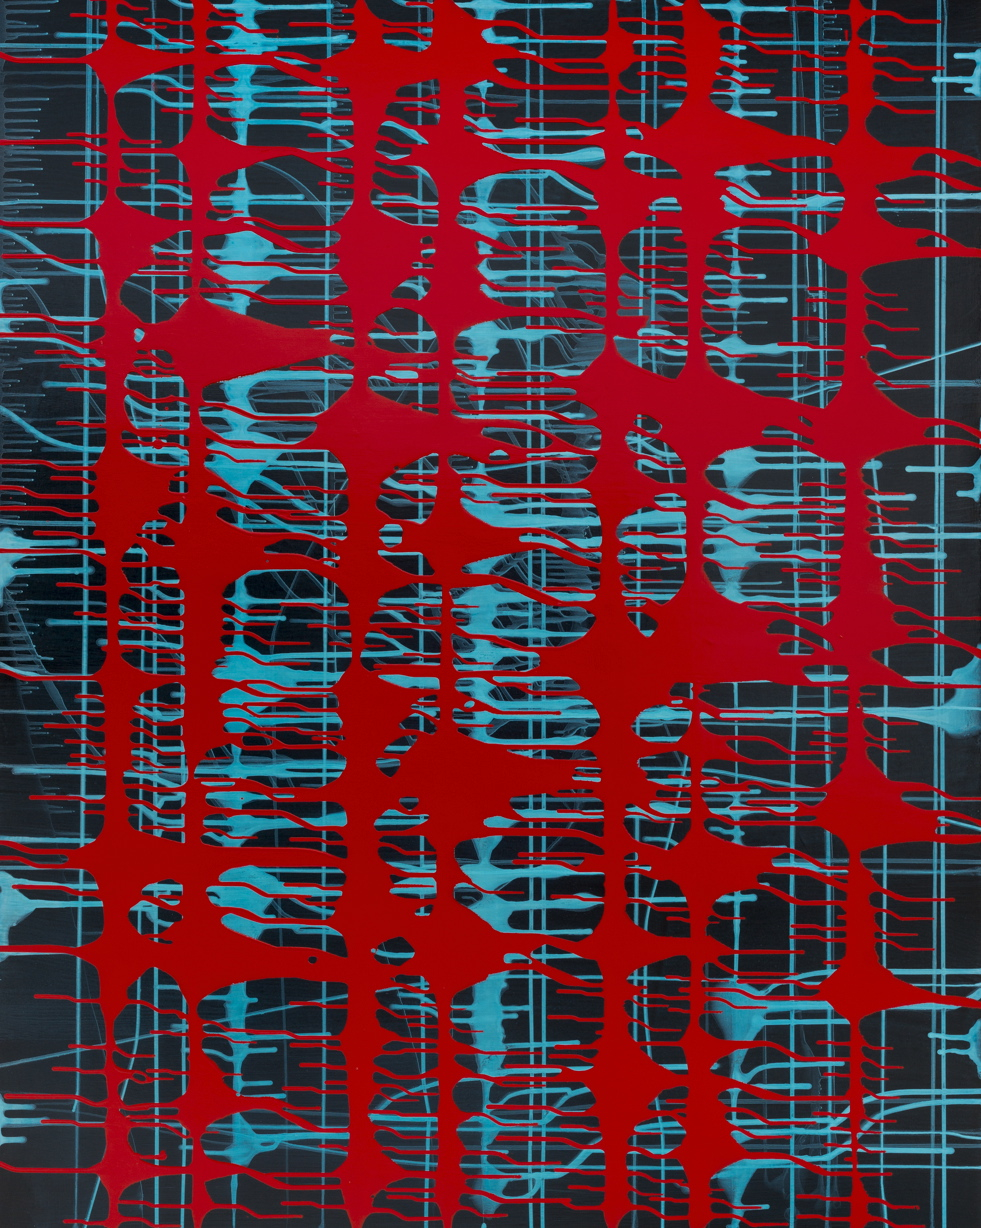 2016 LINEAR RELATION / acrylic and oil on canvas / 153 x 122 CM